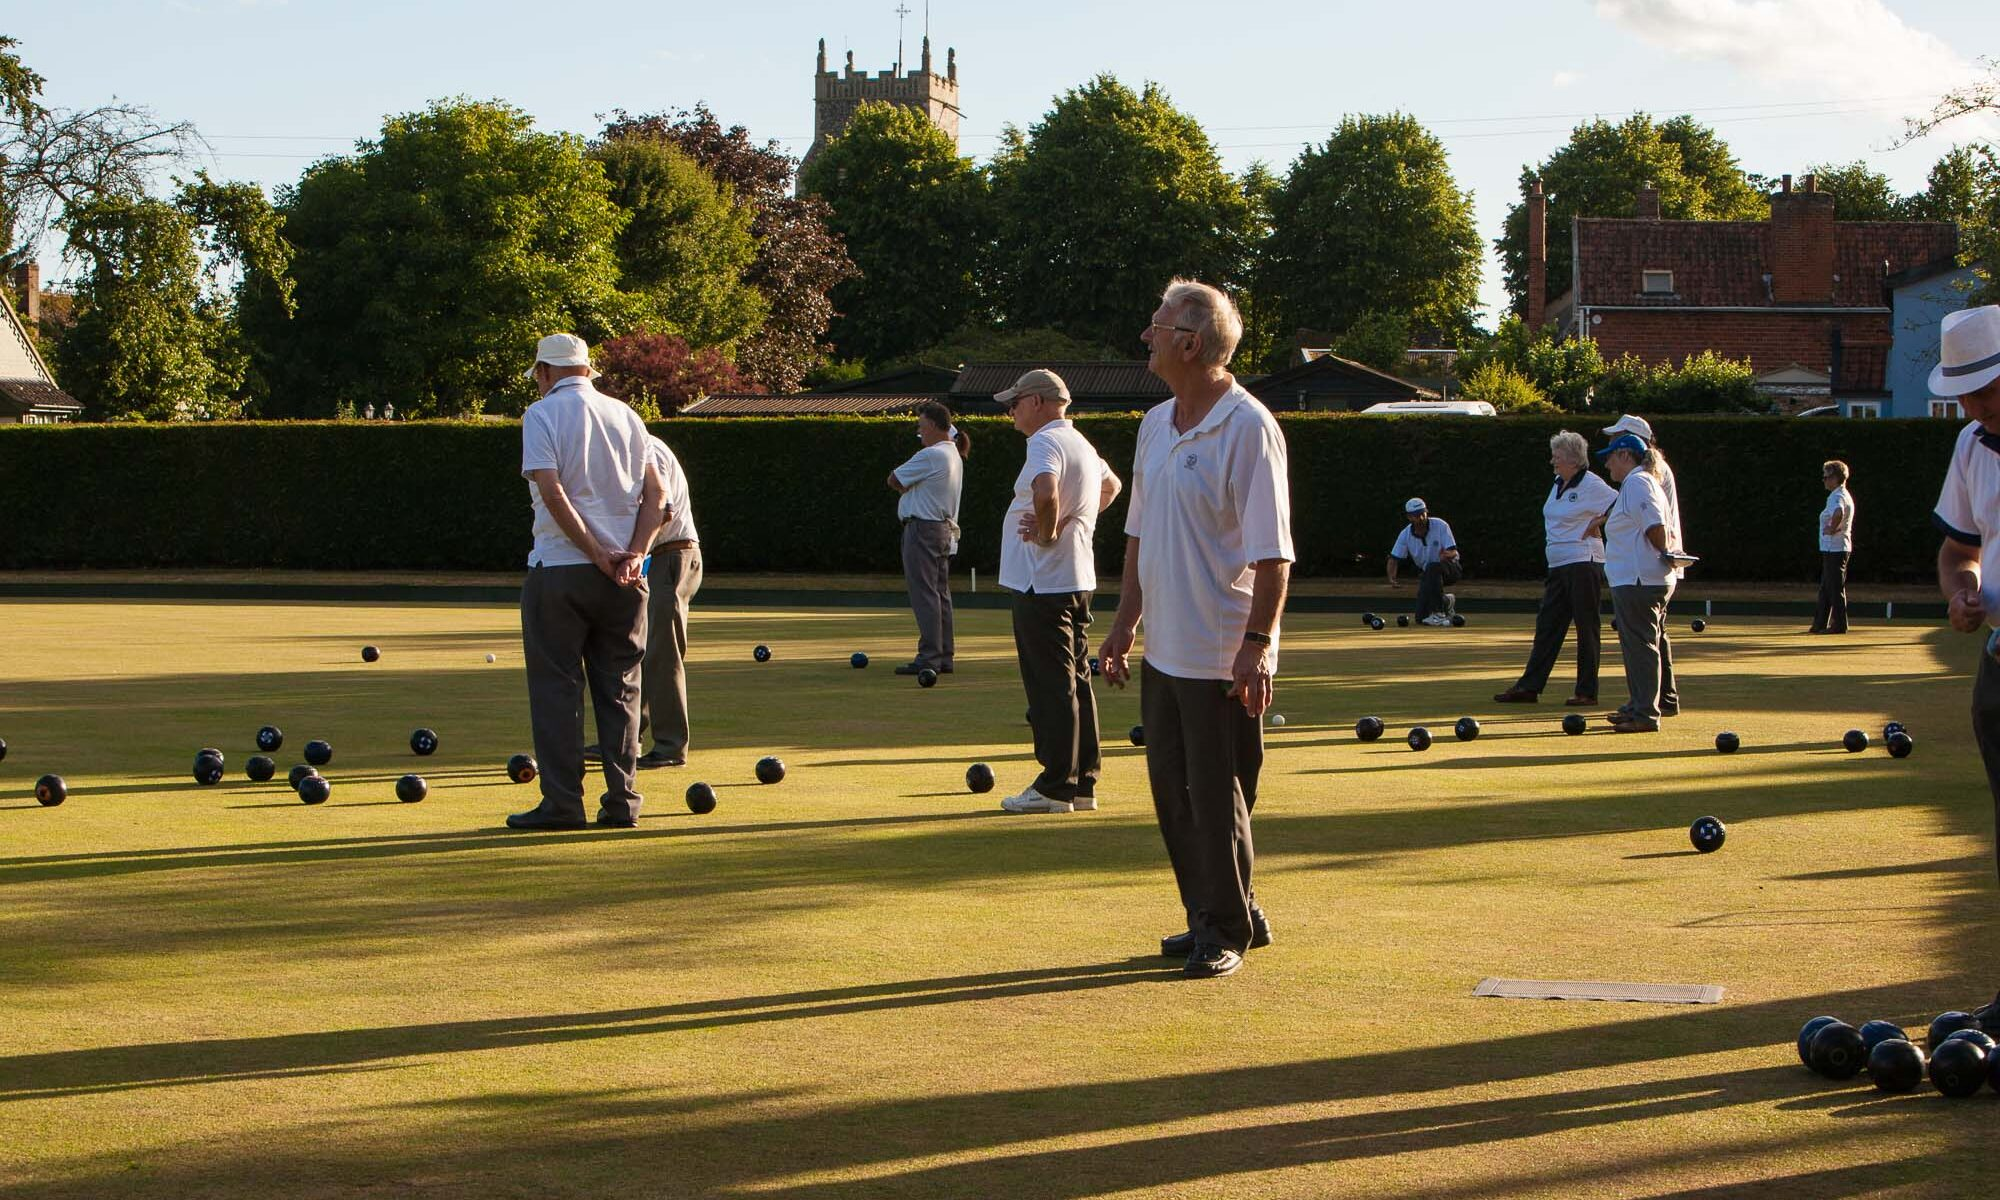 Walsham le Willows bowling club on a summer evening